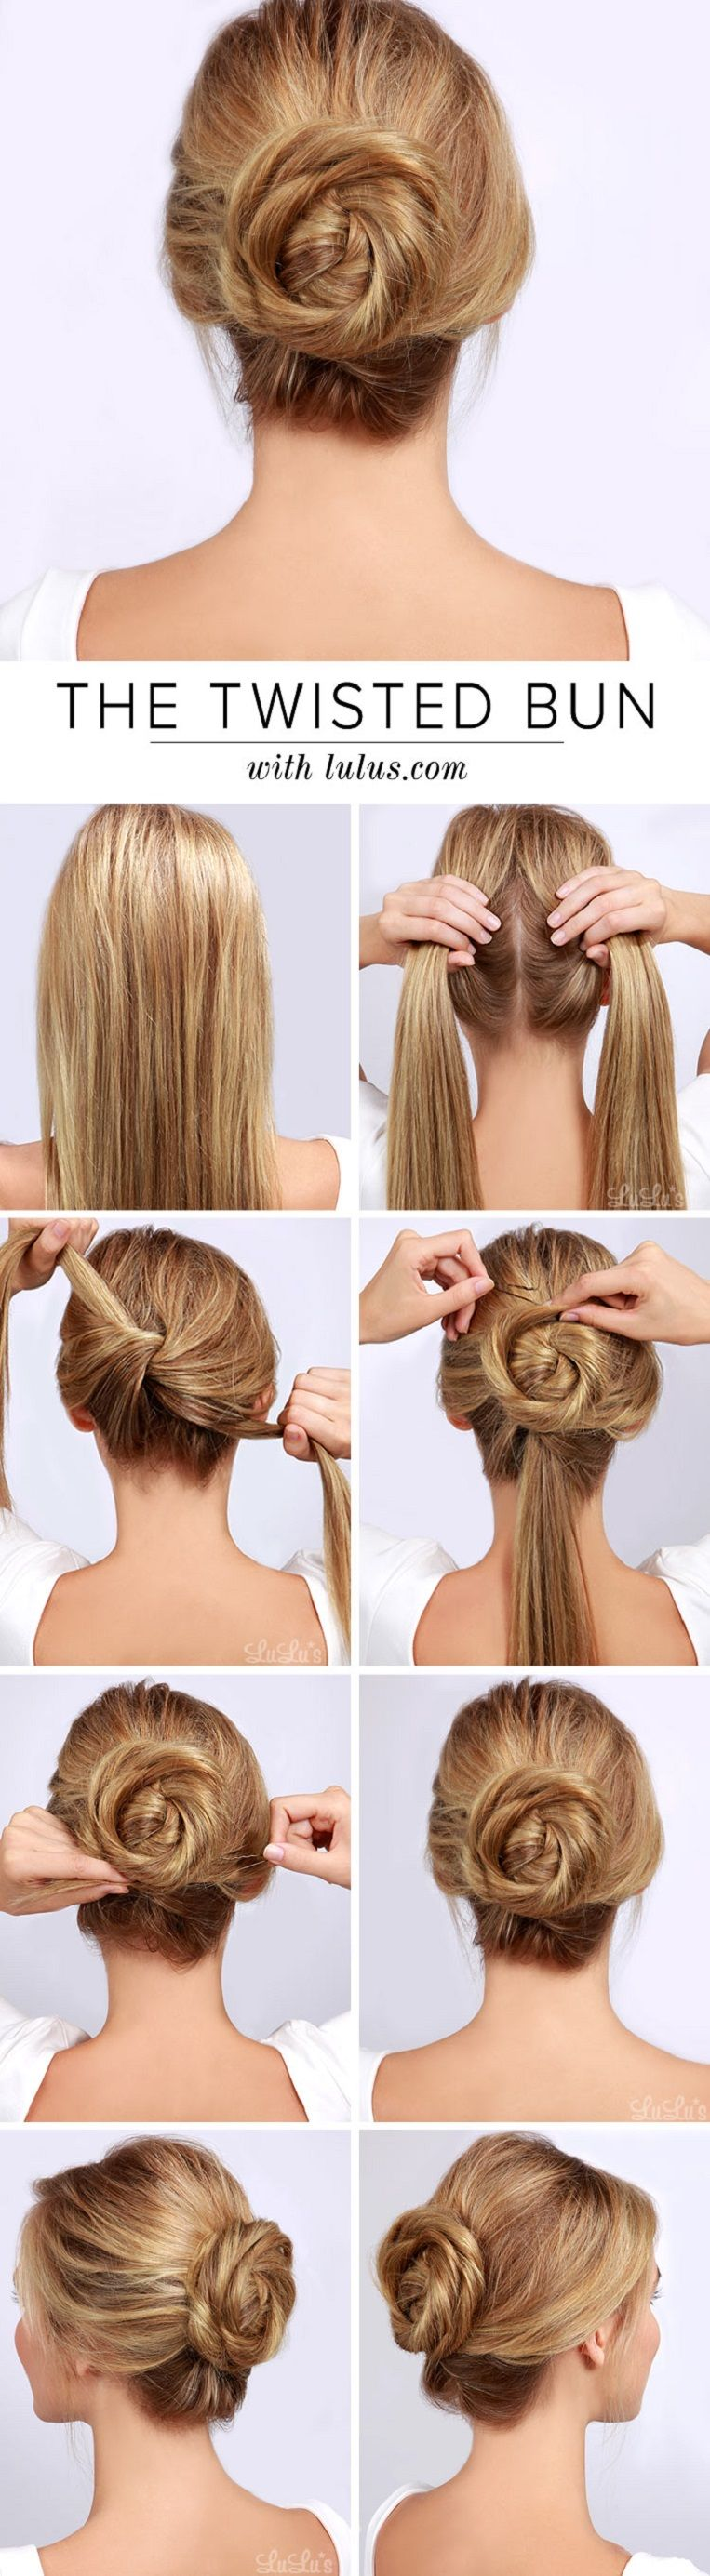 easy but gorgeous hairstyles for busy mornings | hair happy